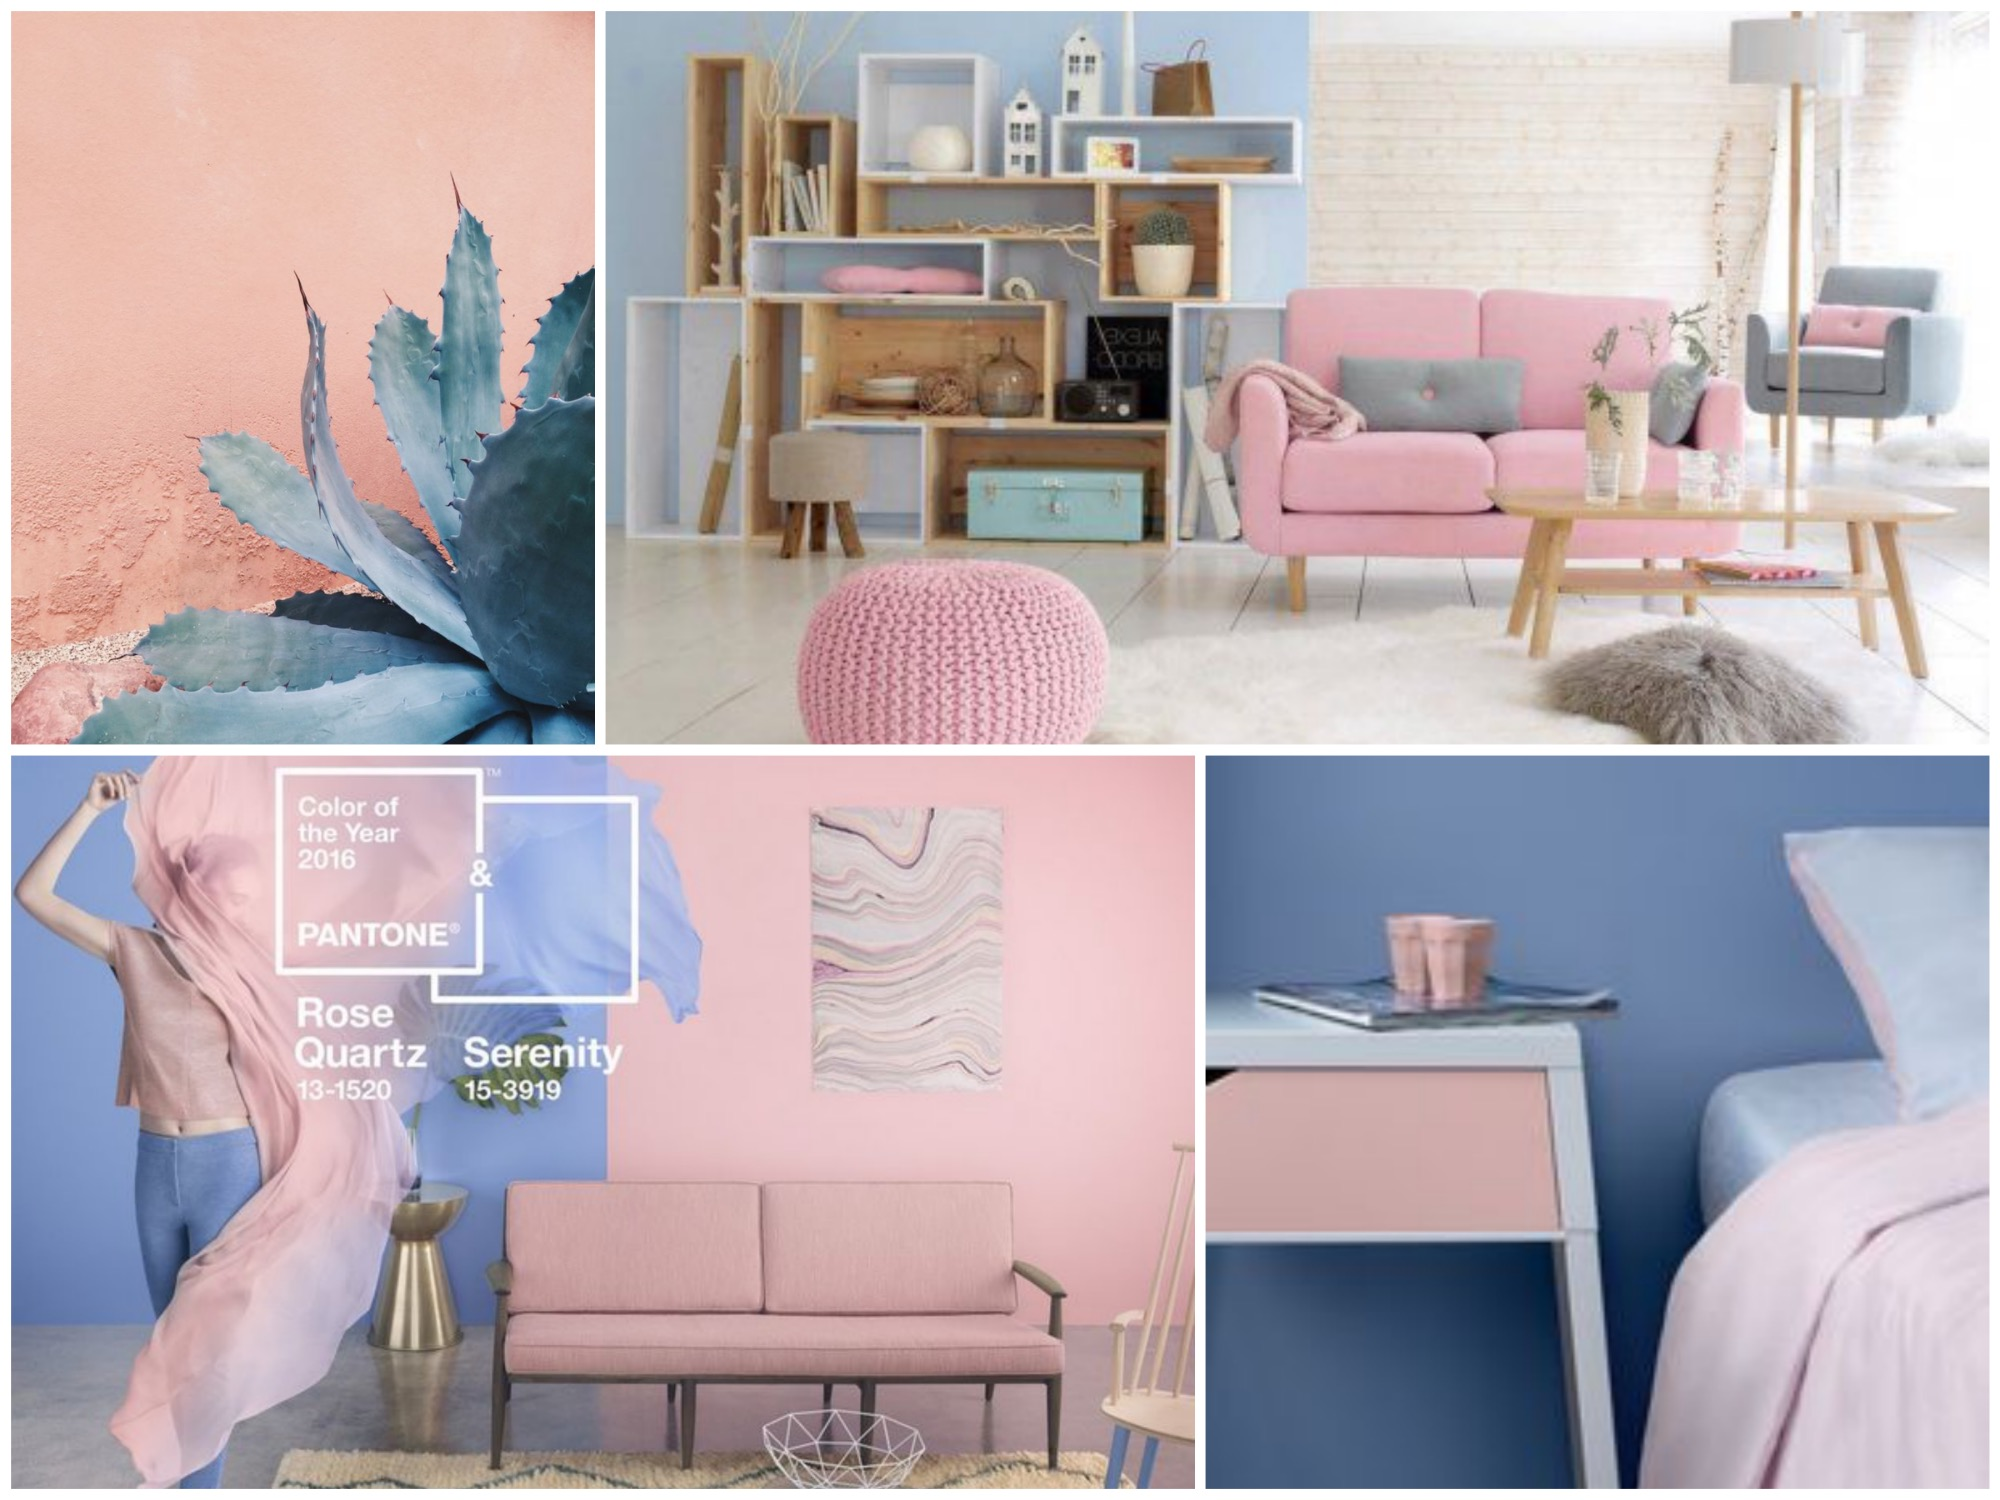 Rose Quartz & Serenity - Pantone Colors of the Year 2016